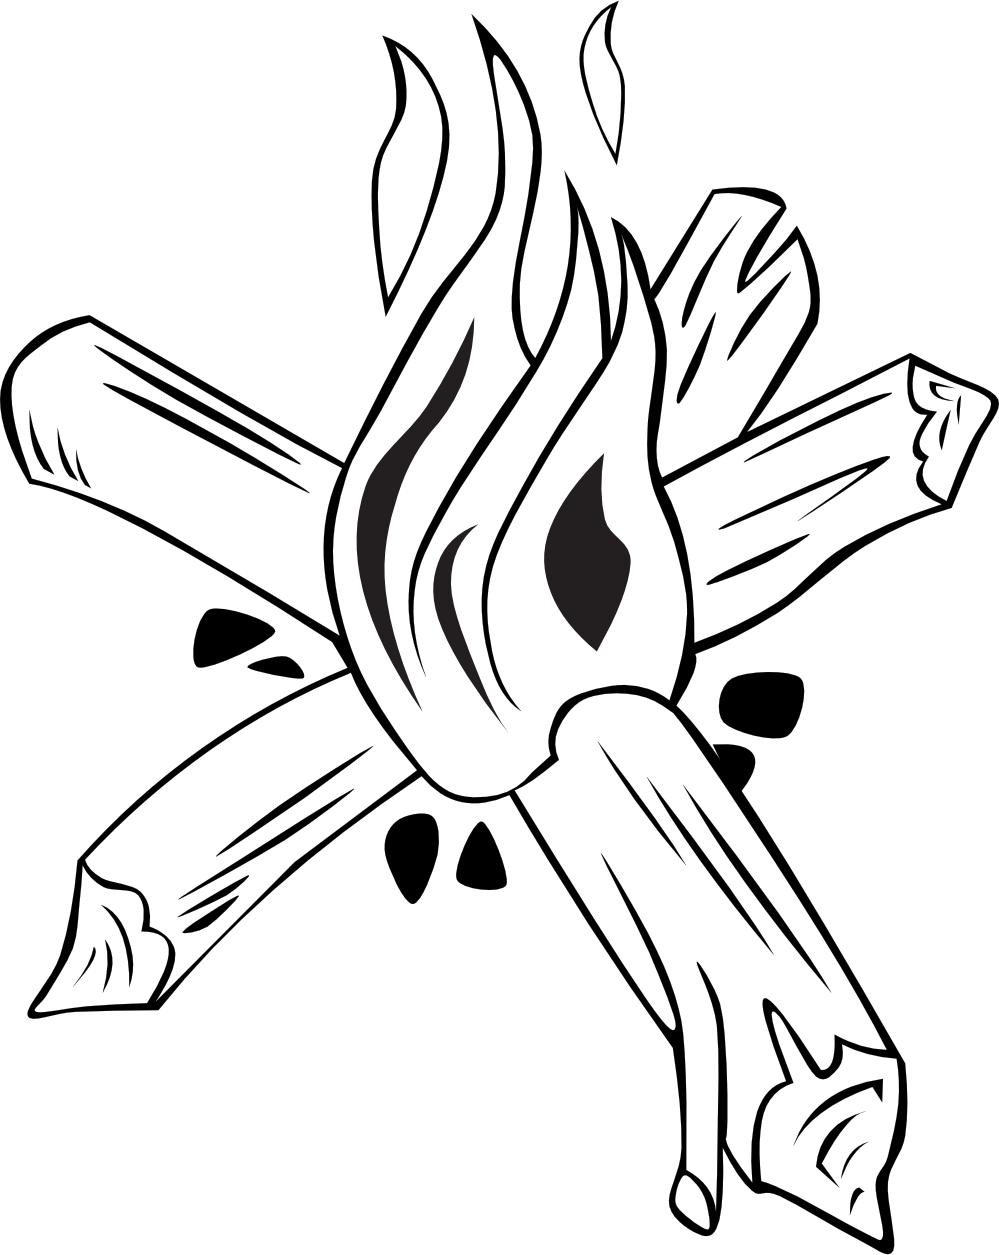 black%20and%20white%20campfire%20clipart